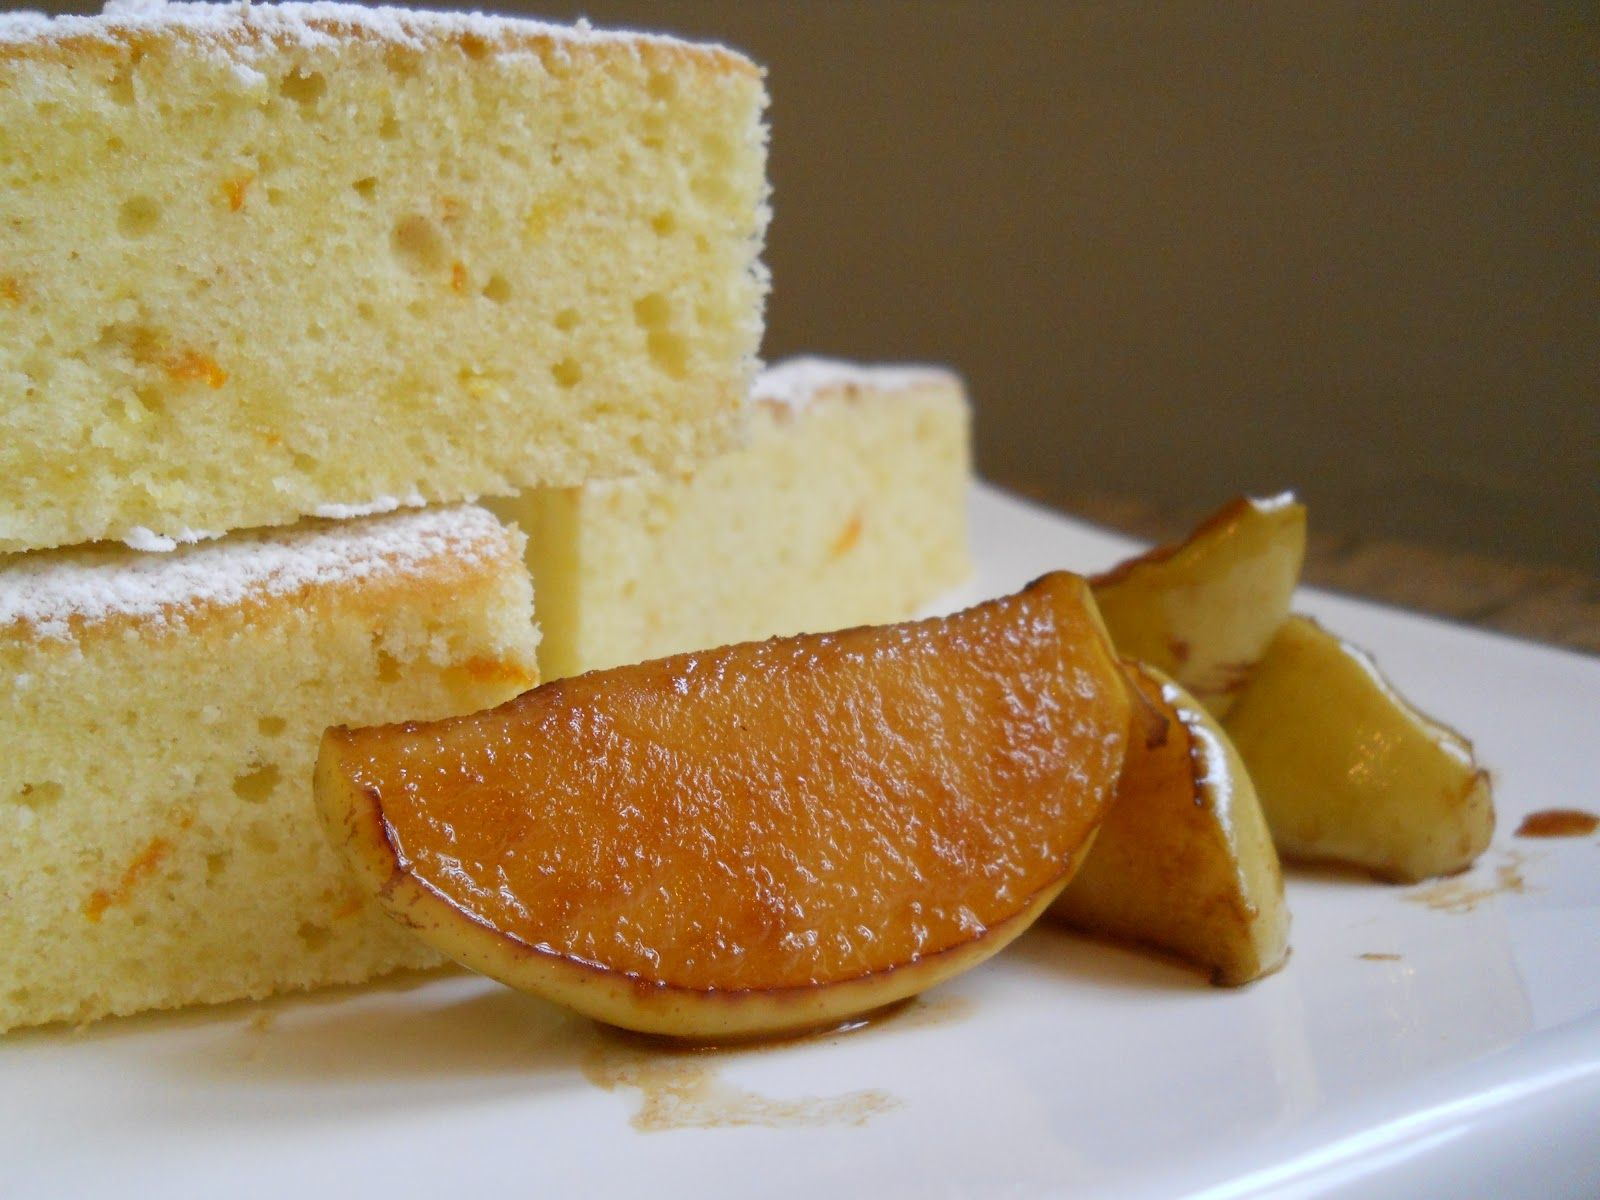 Cooking & Baking With Wine - Shown is Late Harvest Citrus Cake